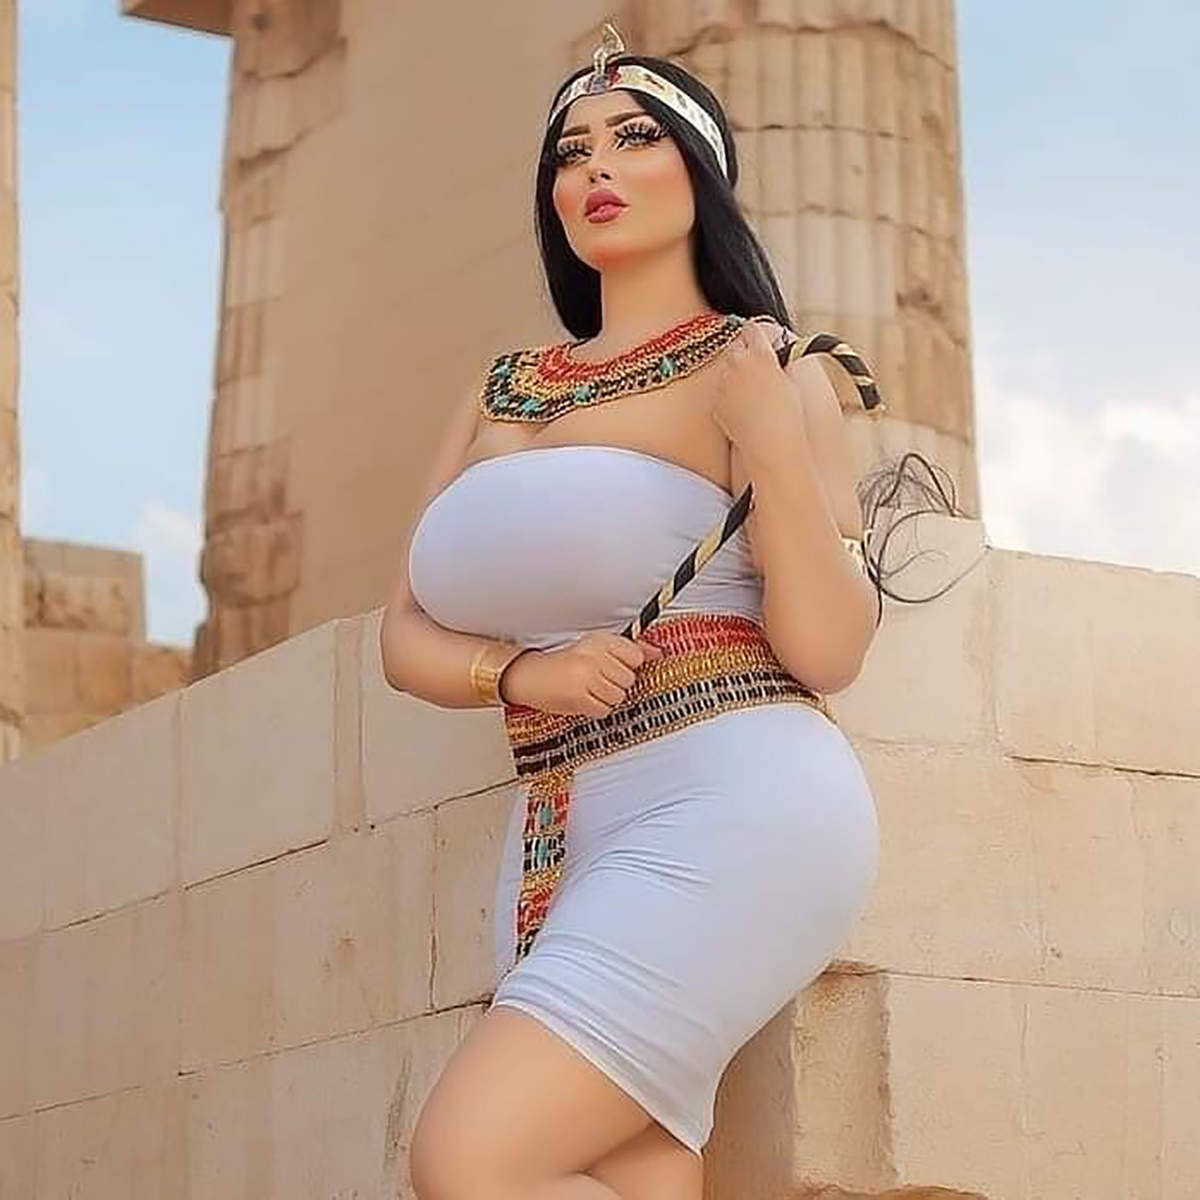 Egyptian model Salma Al-Shimi arrested for indecent photoshoot in front of the pyramid